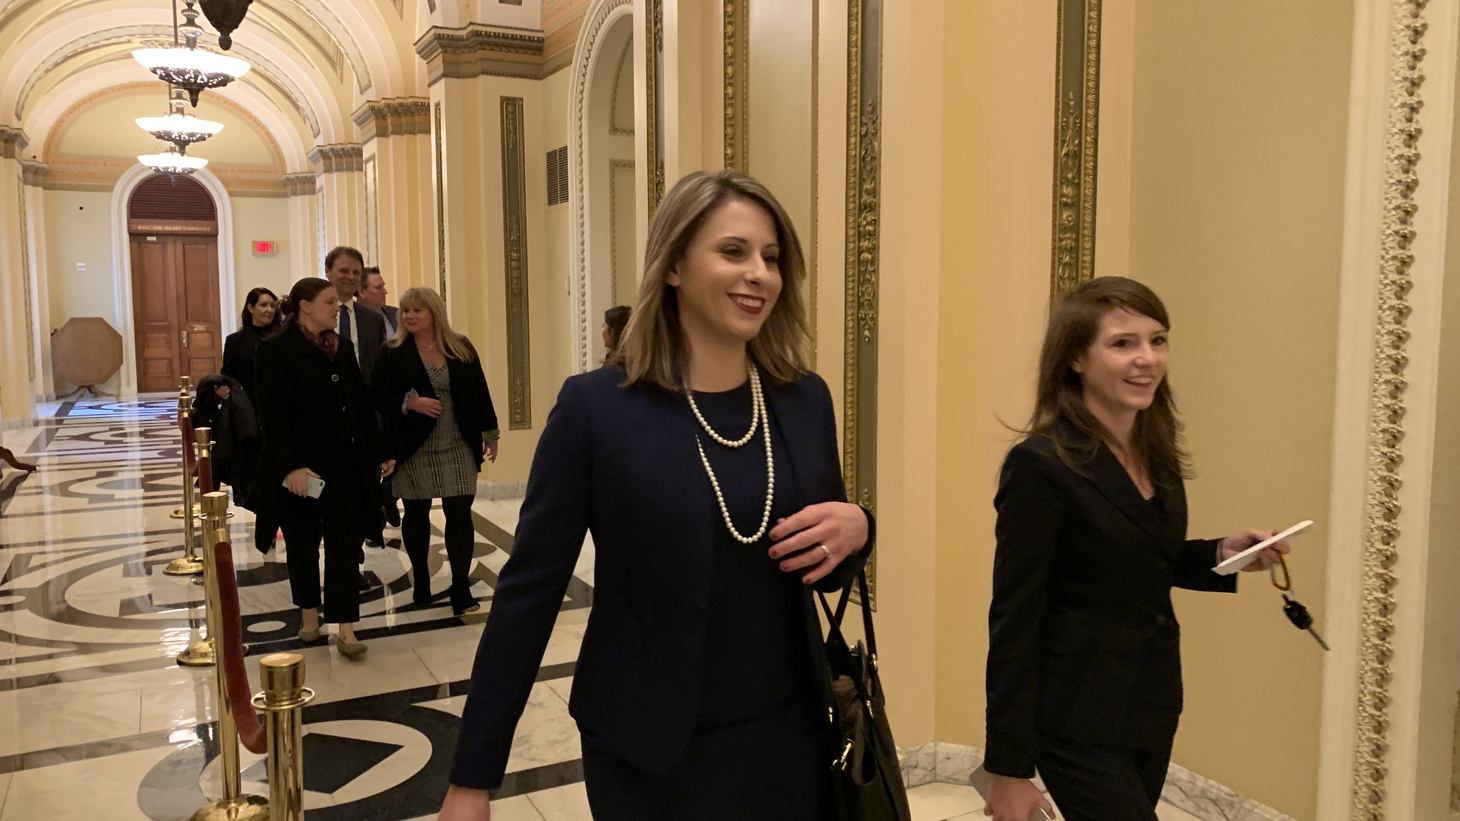 Representative-elect Katie Hill walks through the halls of the Capitol on her way to pick up her member pin, her voting card and her parking pass just before being sworn in as a member of Congress. Photo by Michell Eloy